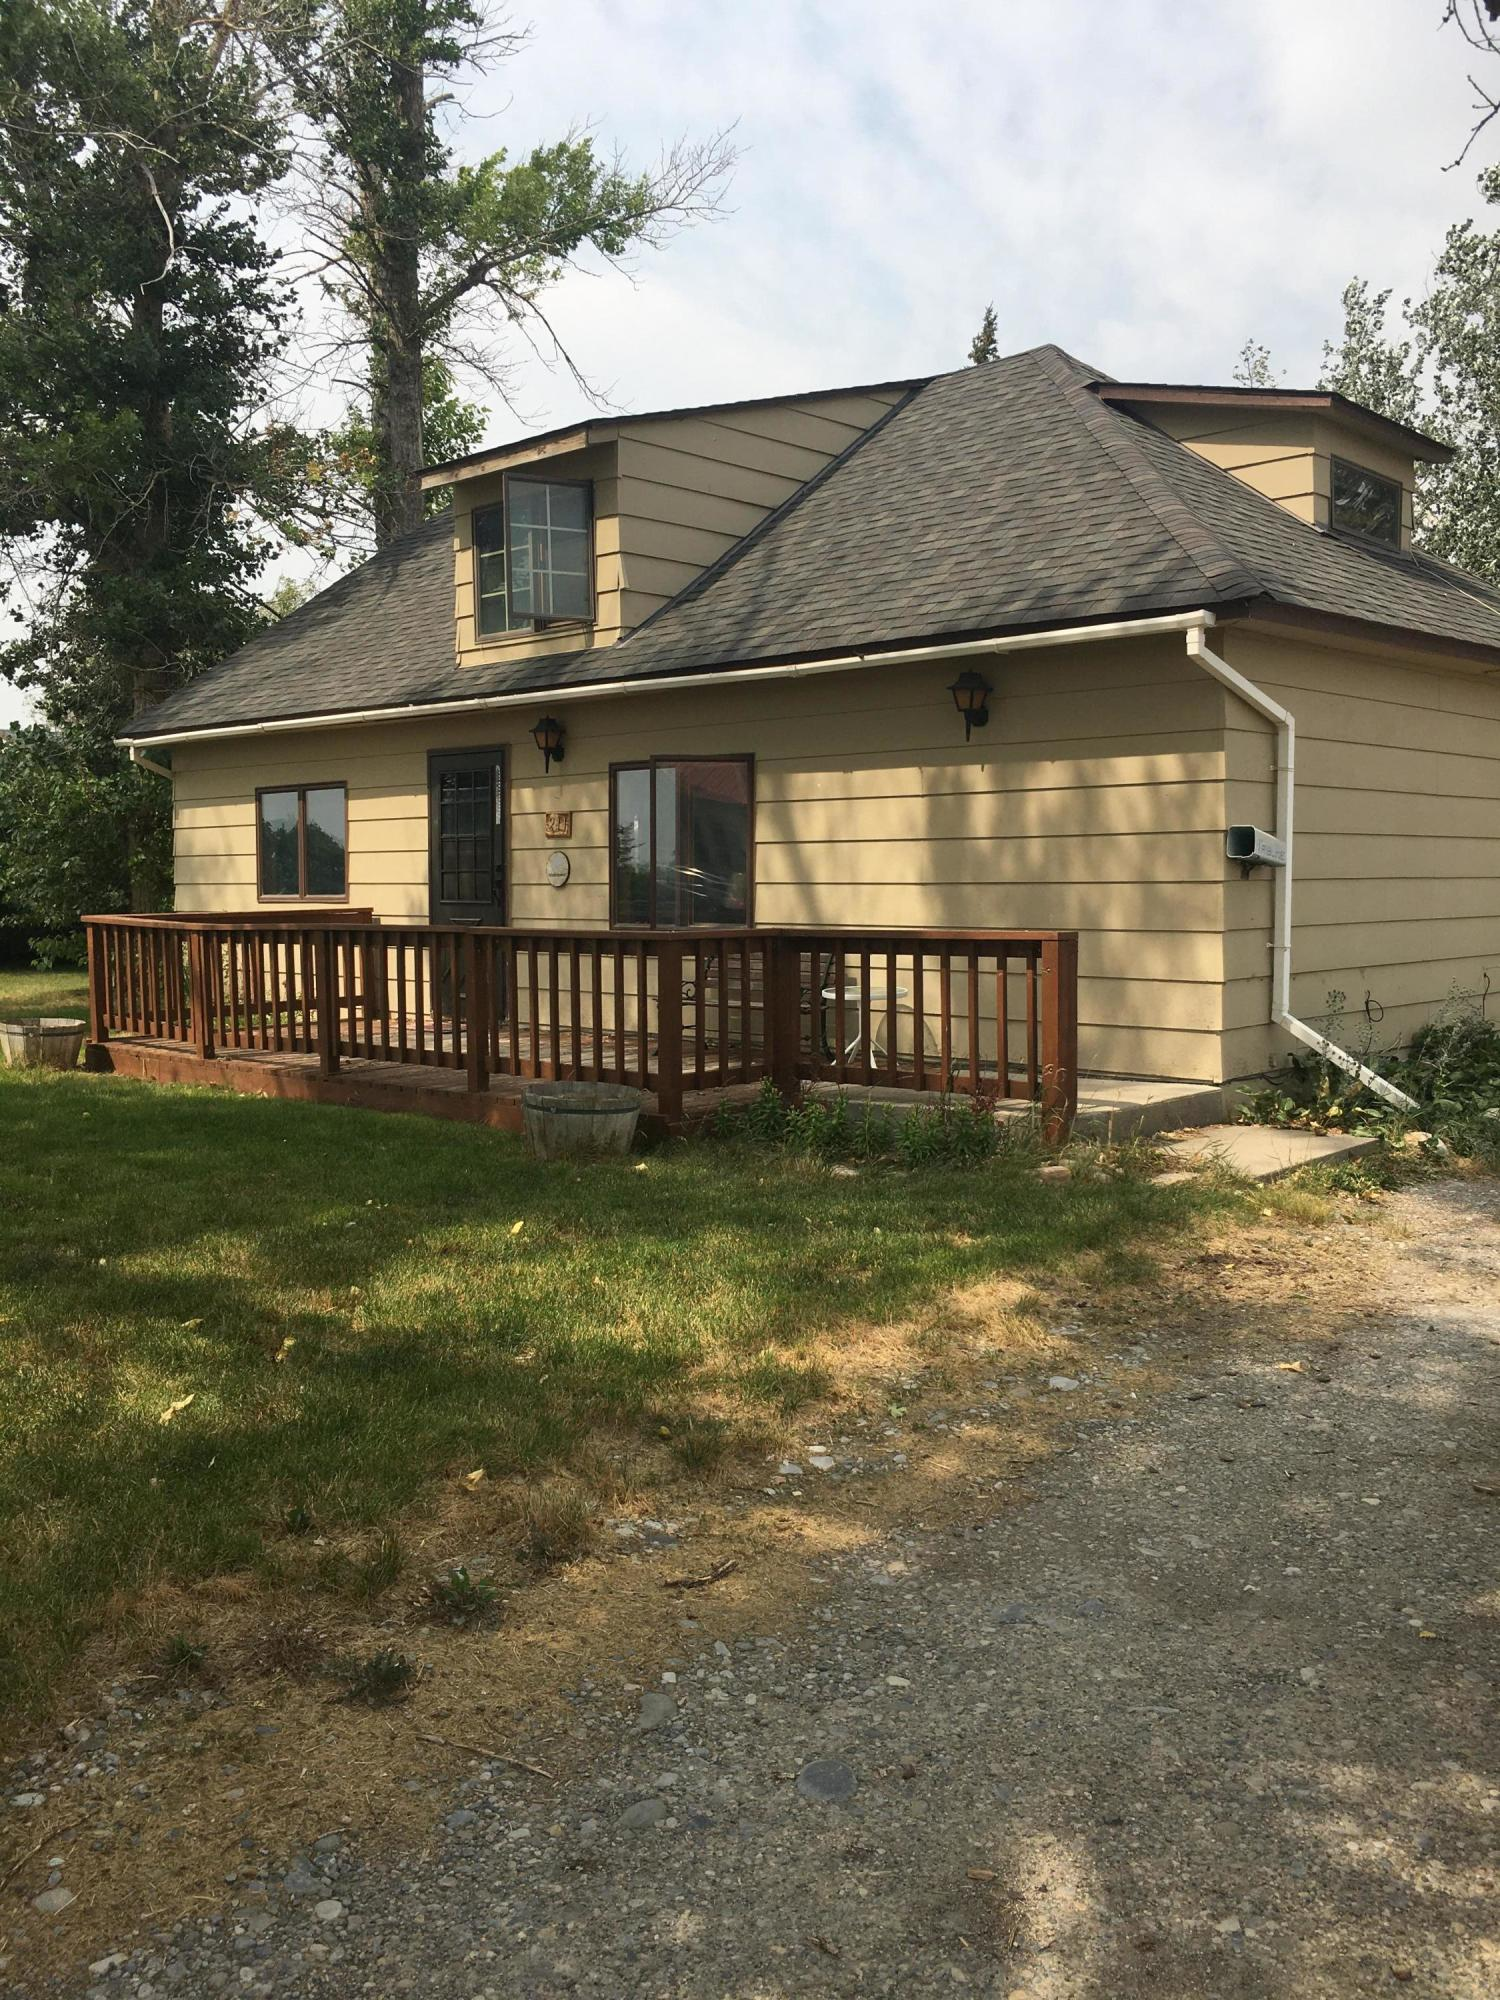 An inviting and cozy feel is an added bonus in this 4  bedroom 2 bath home.  Plenty of parking and a detached oversized 2 car garage with a bonus room.    Mature trees surround the property that is located near Lake Francis with year around recreation.   This property is waiting for a Buyer and is PRICED TO SELL!